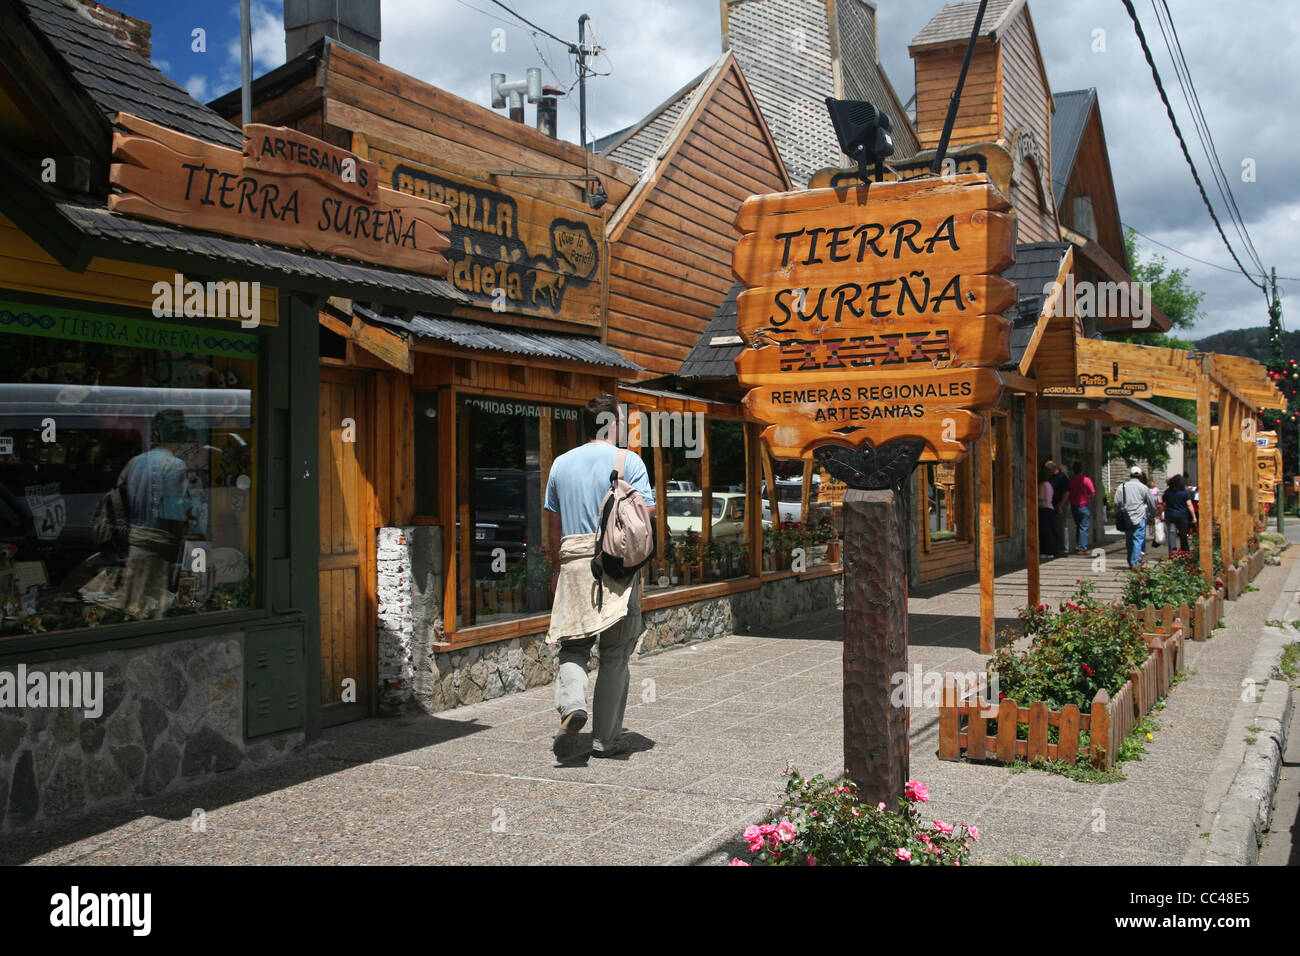 Tourists in shopping street in San Martin de los Andes, Argentina - Stock Image